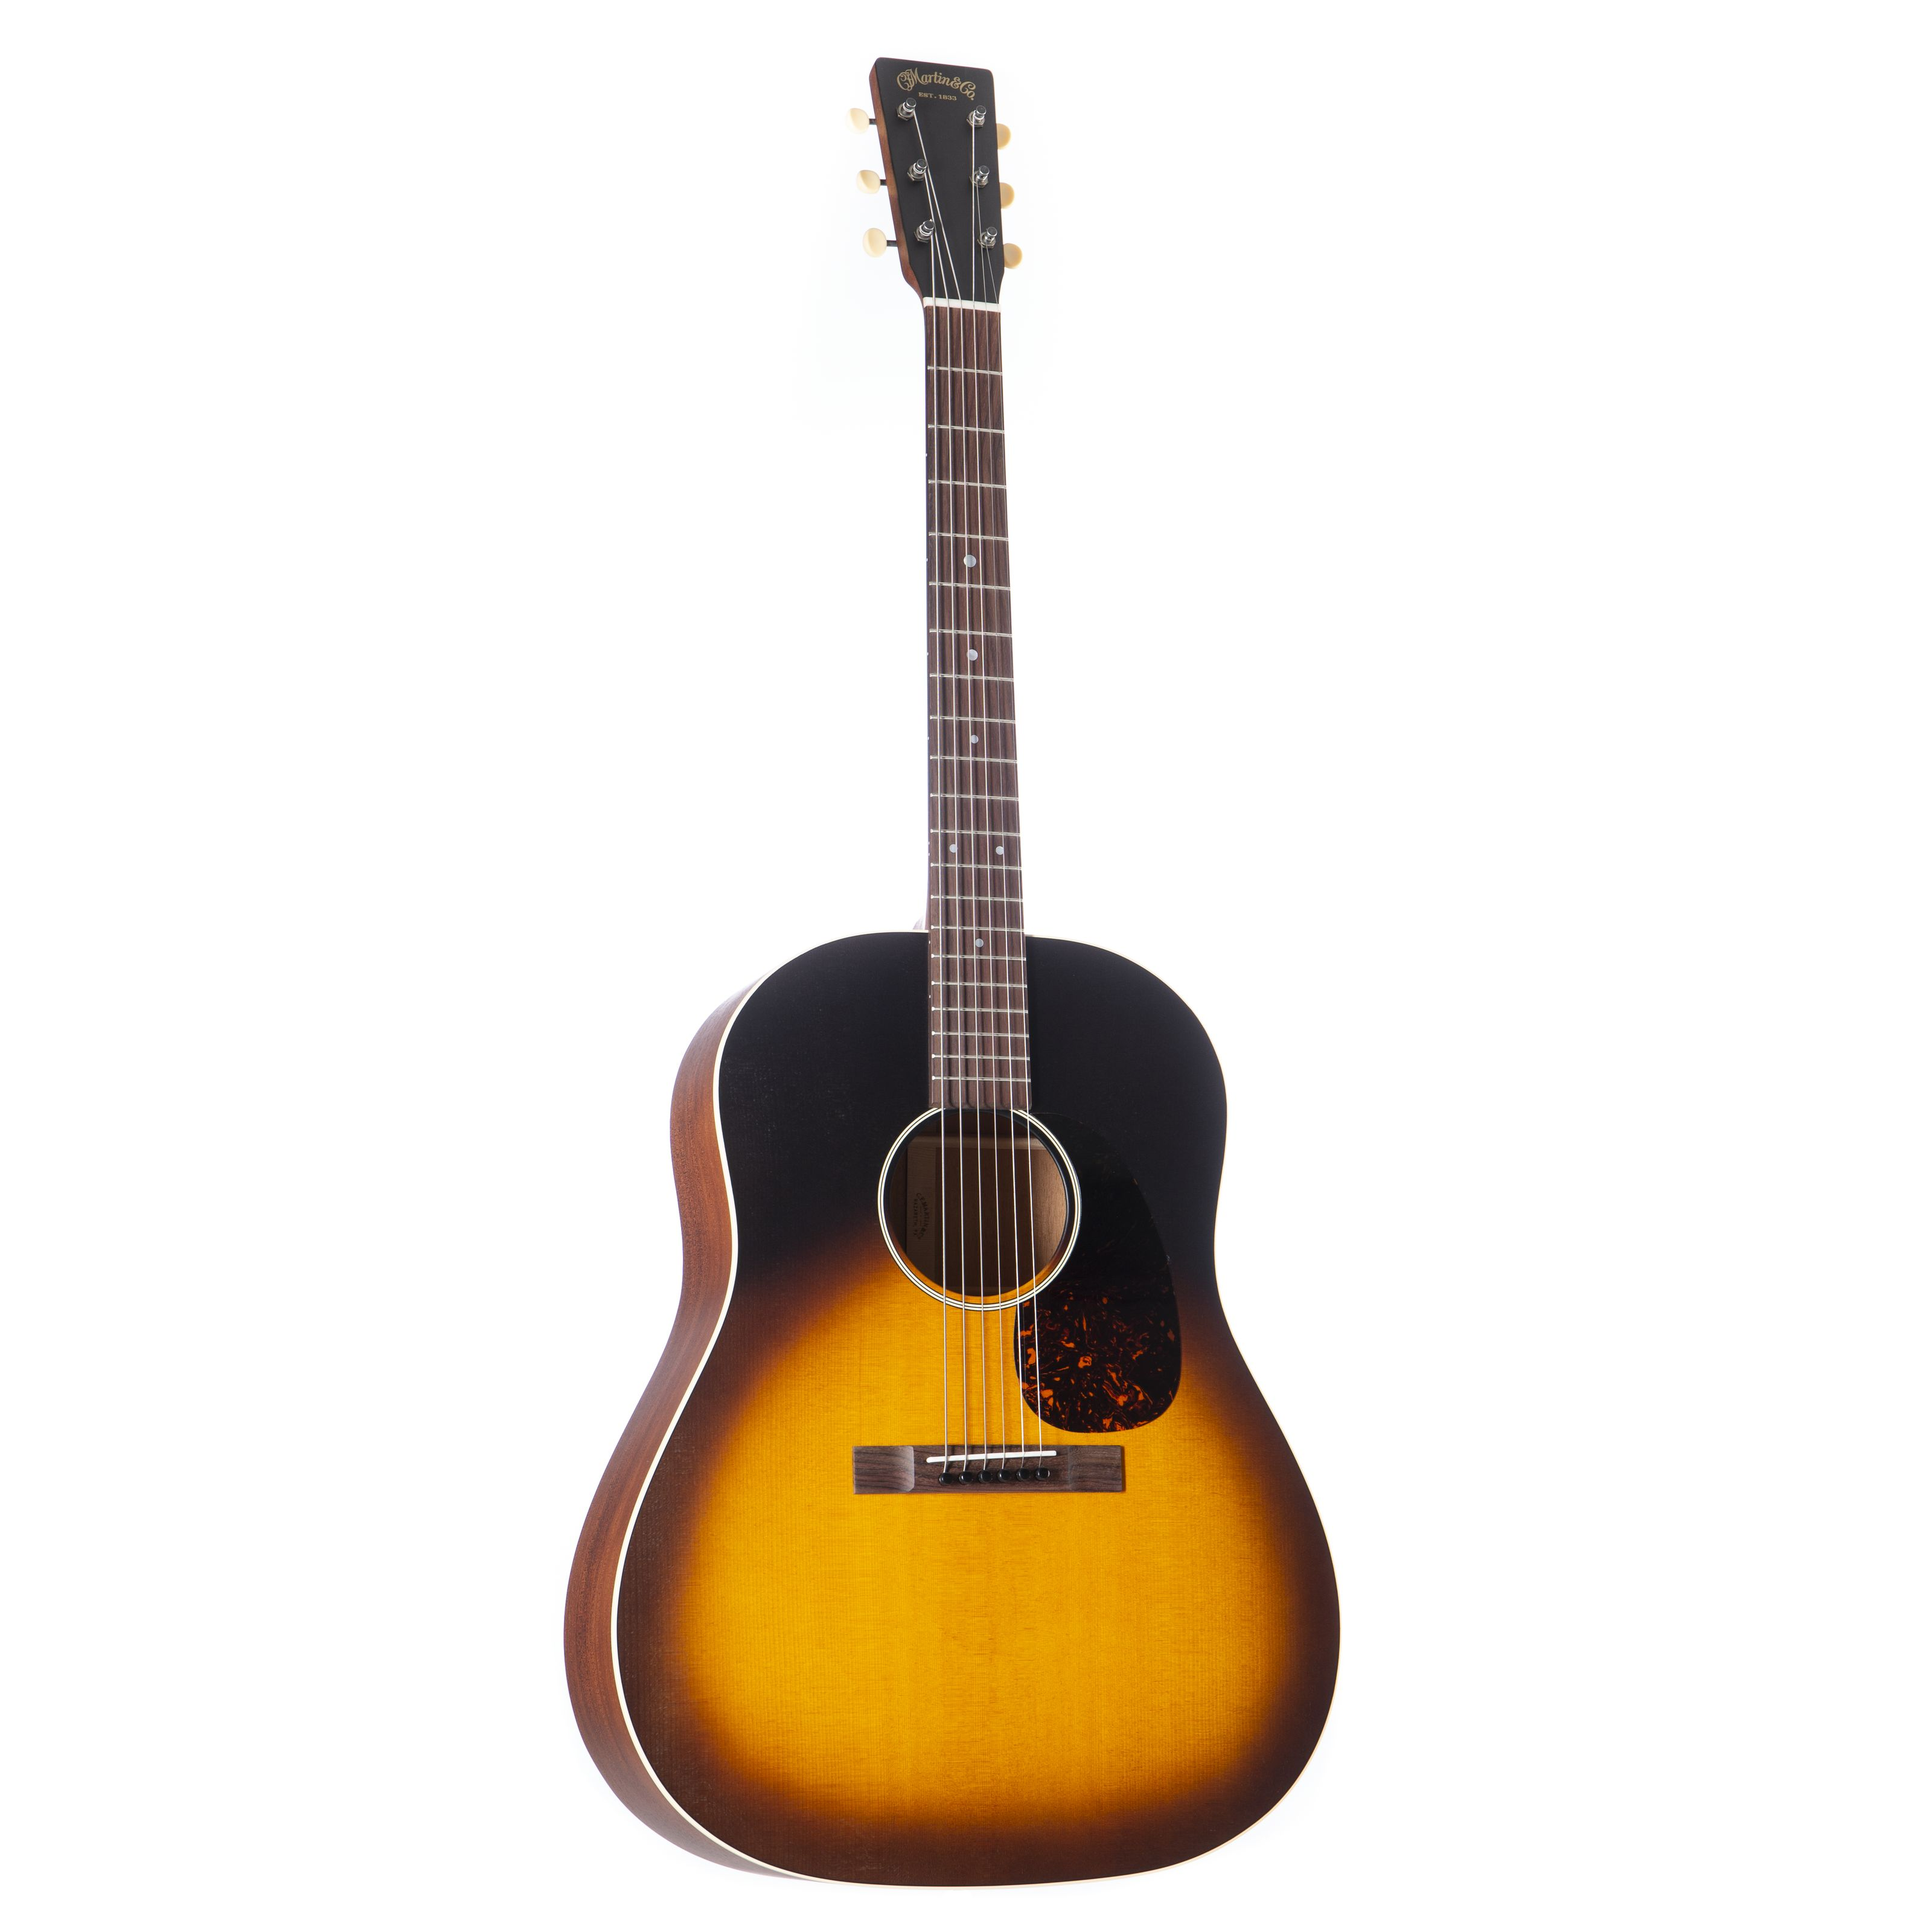 Martin Guitars - DSS-17 Whiskey Sunset DSS-17 WhiskeySunset